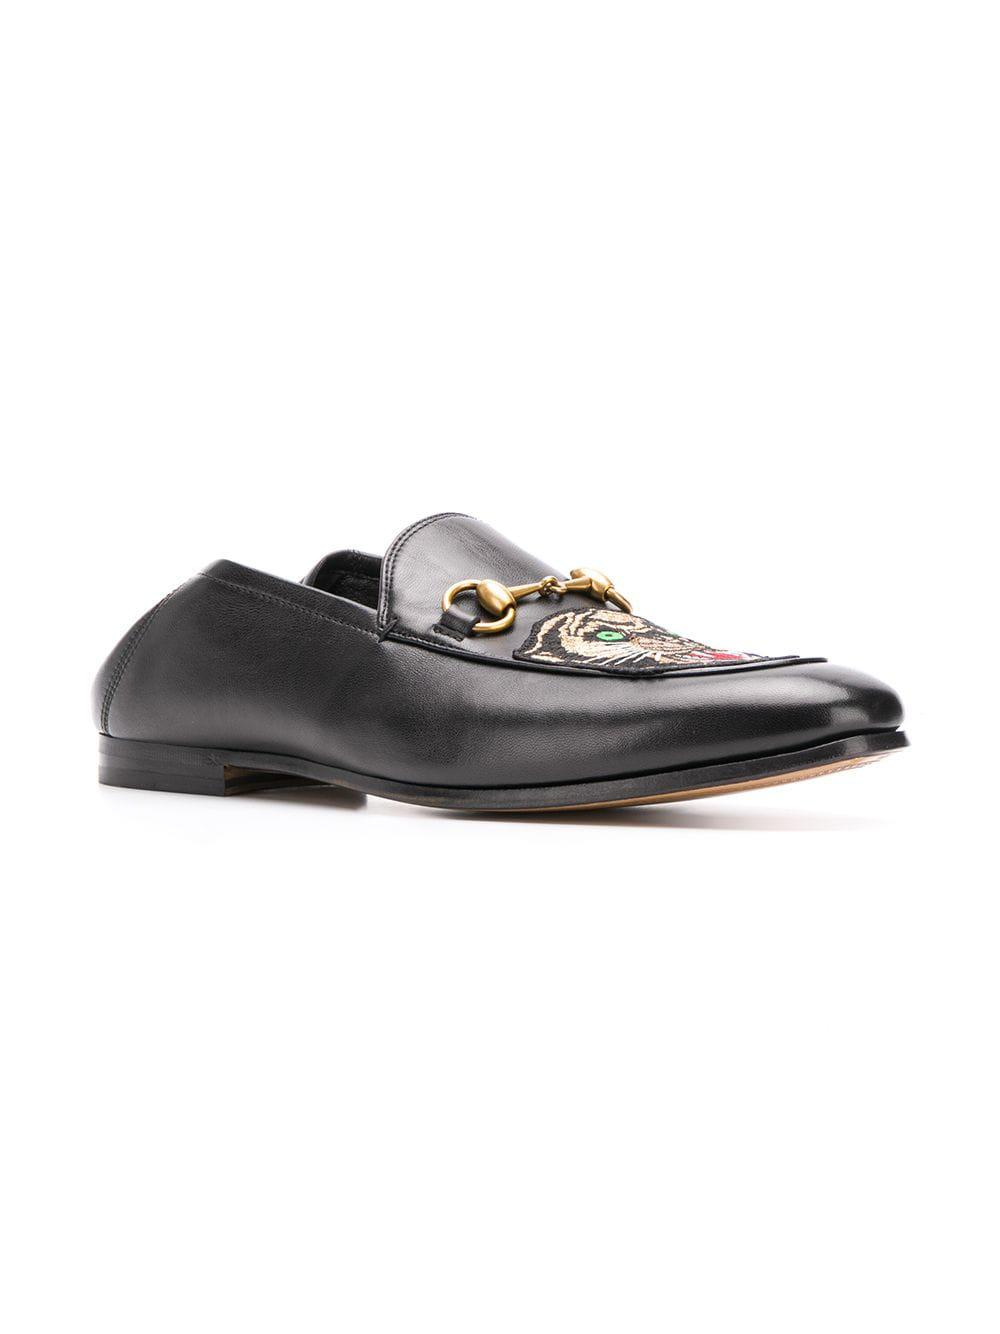 23a0e922b Gucci Panther Embroidered Horsebit Loafers in Black for Men - Lyst